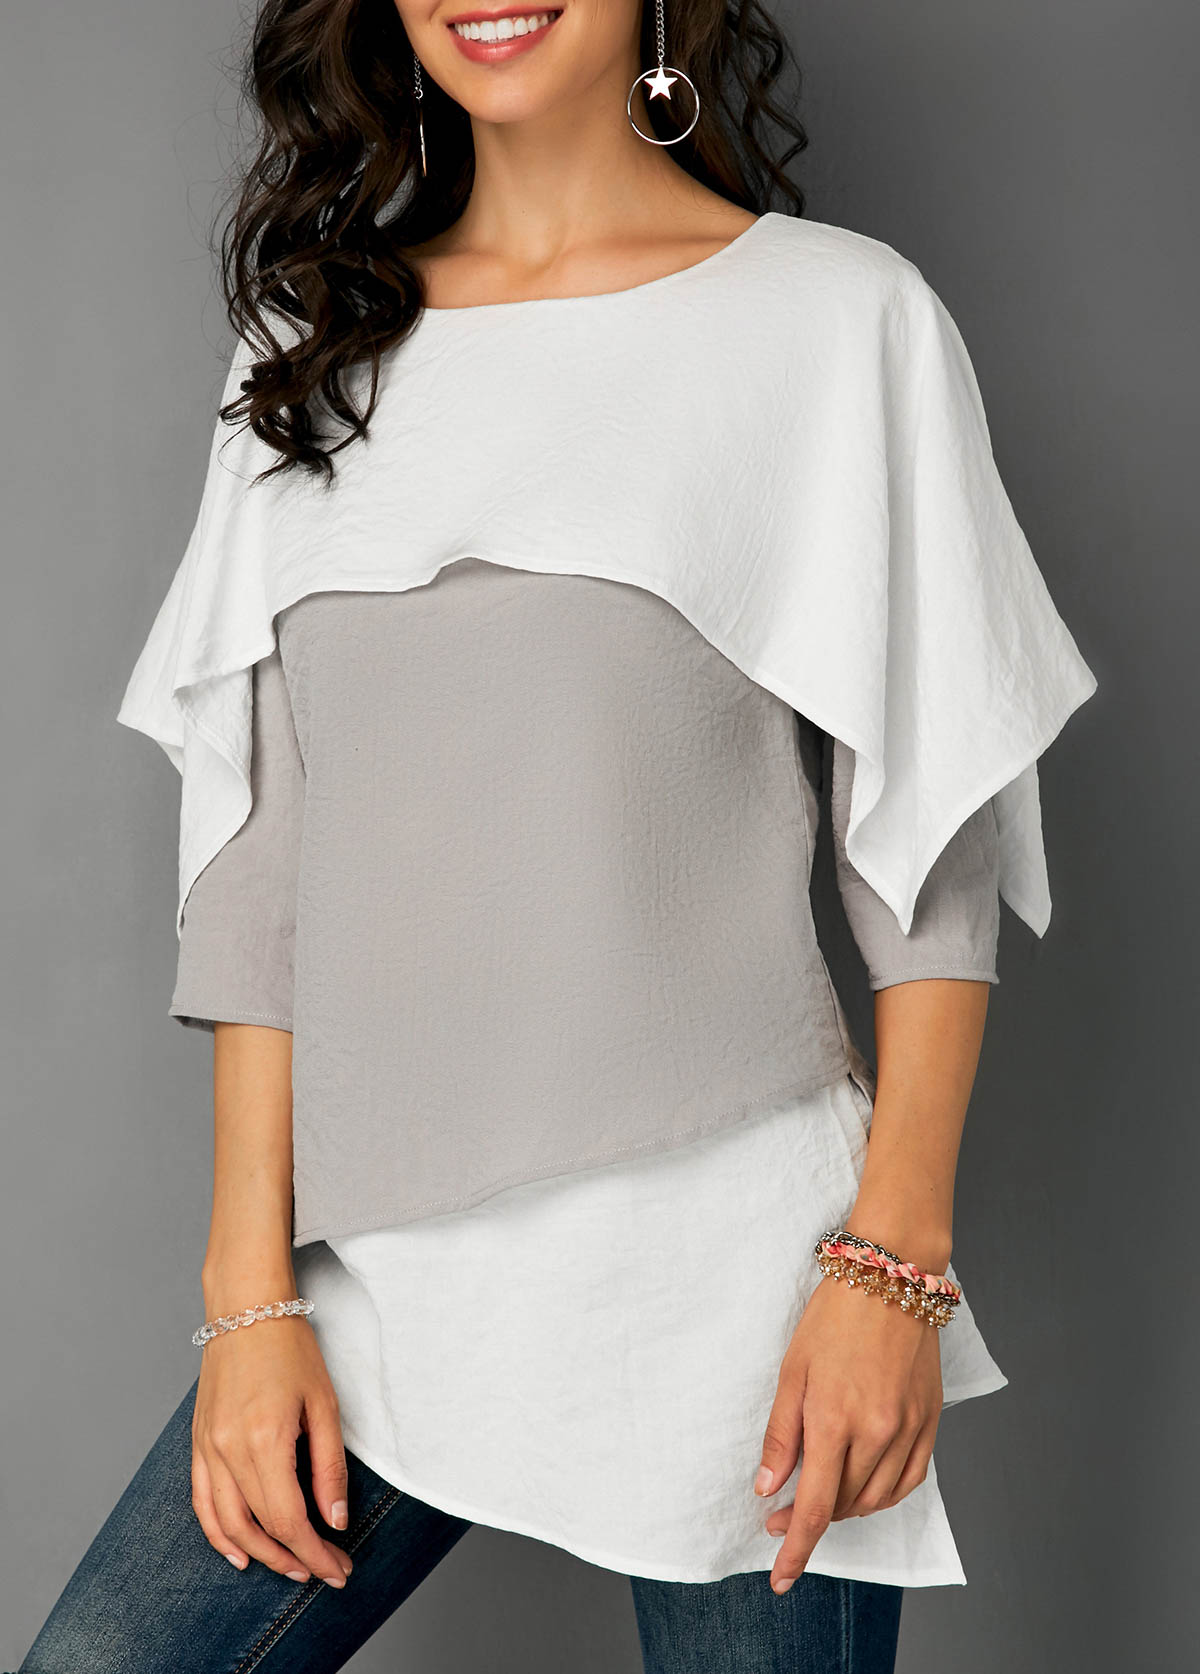 Overlay Detail Layered Hem Contrast Blouse